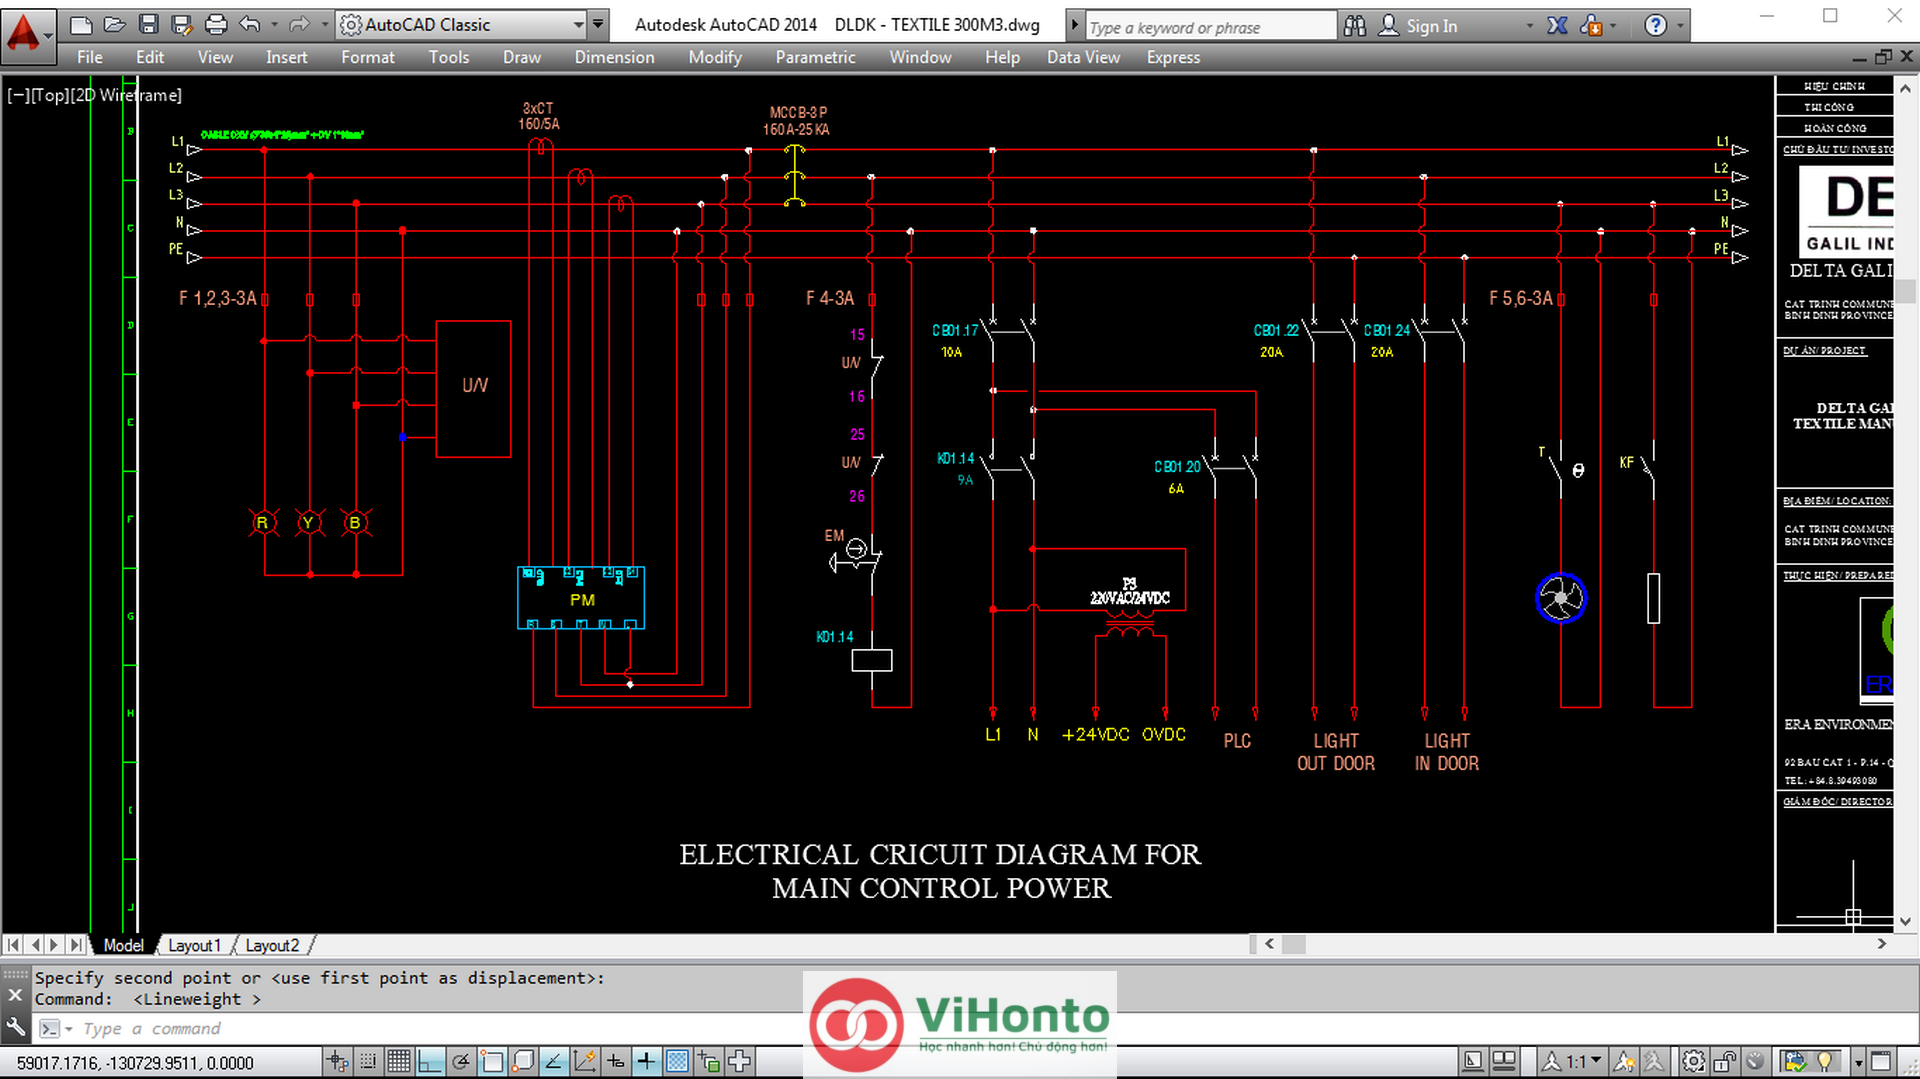 AutoCAD-ung-dung-trong-nganh-dien-tu-dong-1 [HDTV (1080)]